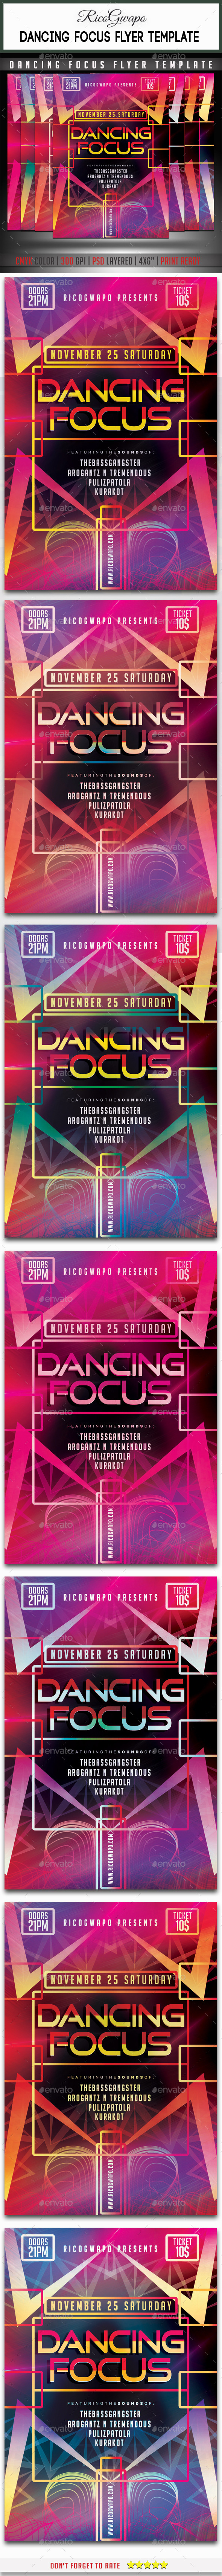 Dancing Focus Flyer Template - Flyers Print Templates